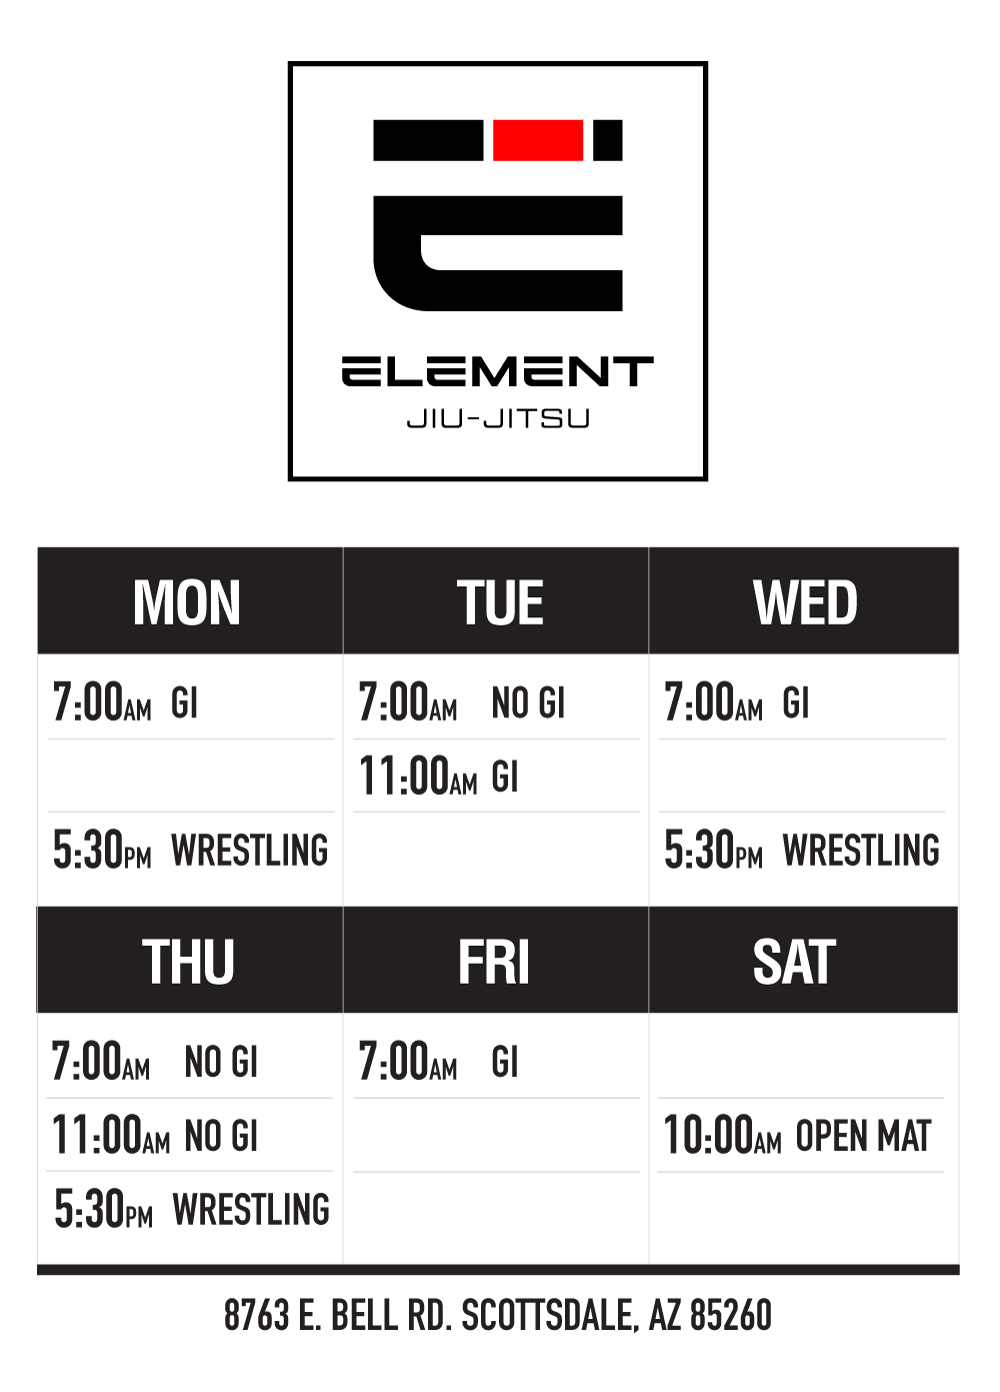 Element Jiu-Jitsu